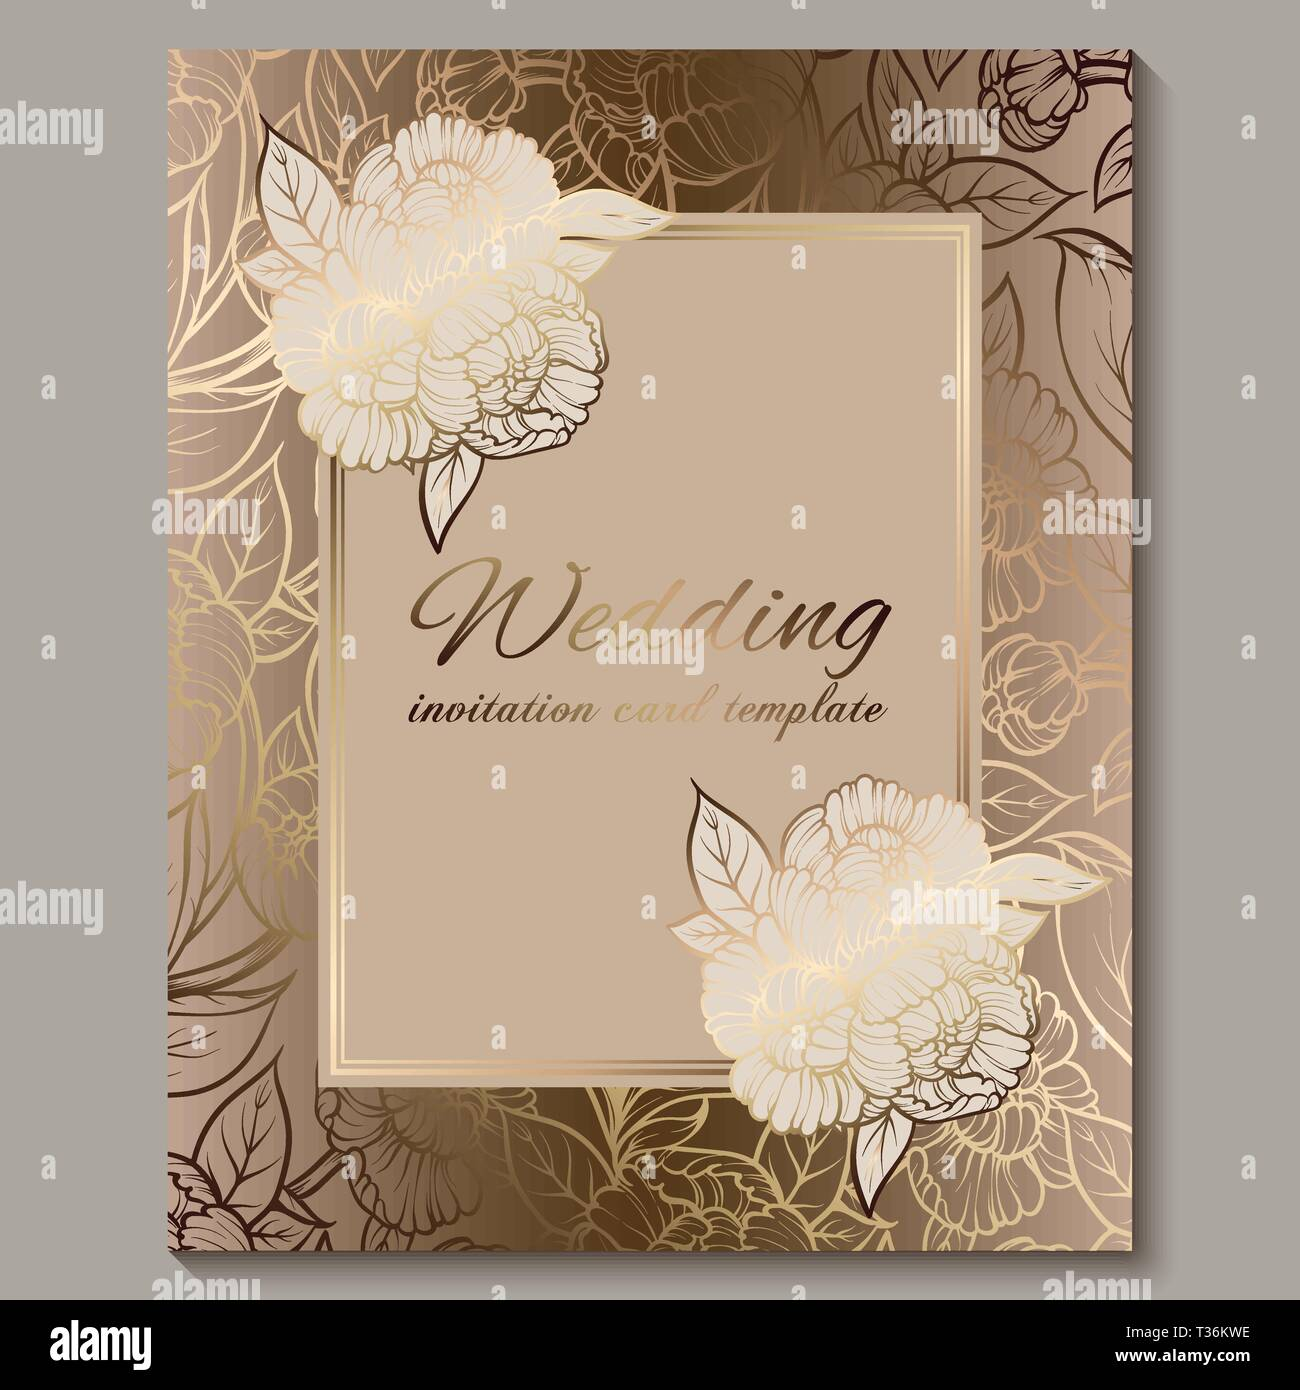 Exquisite Royal Luxury Wedding Invitation Gold Floral